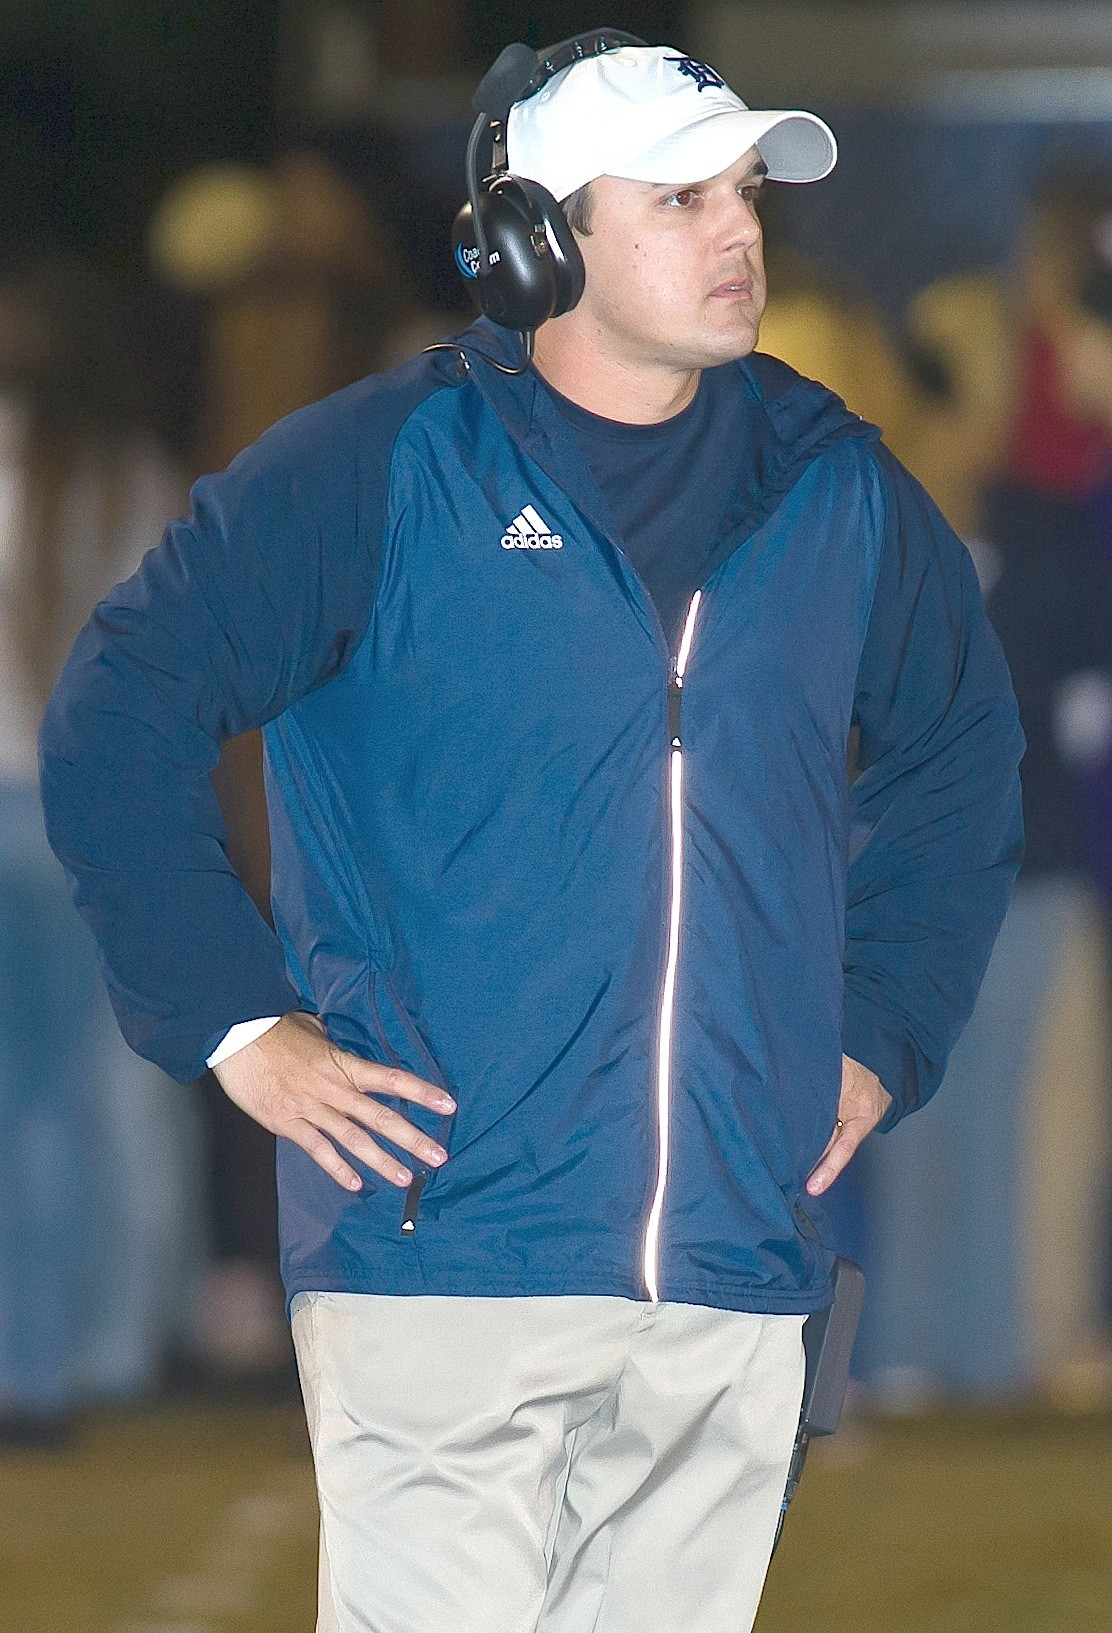 Dora football coach Bart Lockhart looks on during the Bulldogs' win over Good Hope this season. Dora hosts Deshler in the first round of the playoffs tonight.